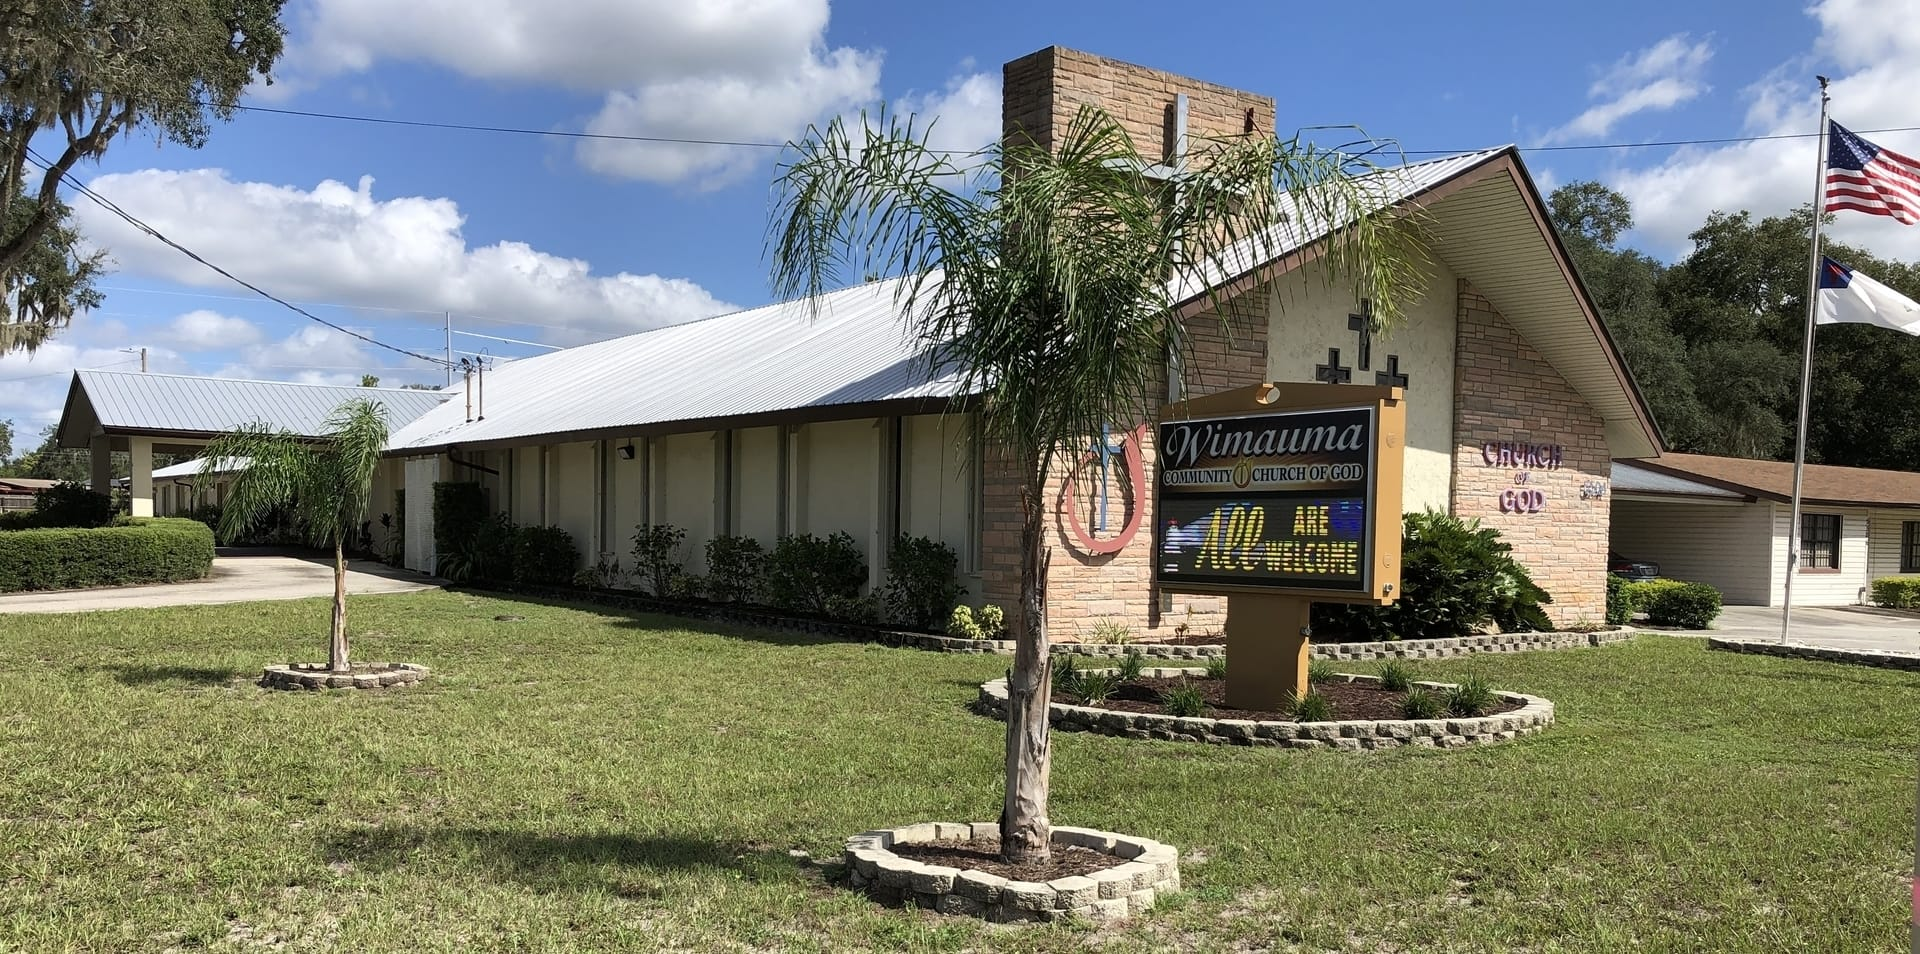 Church - Wimauma Community Church of God